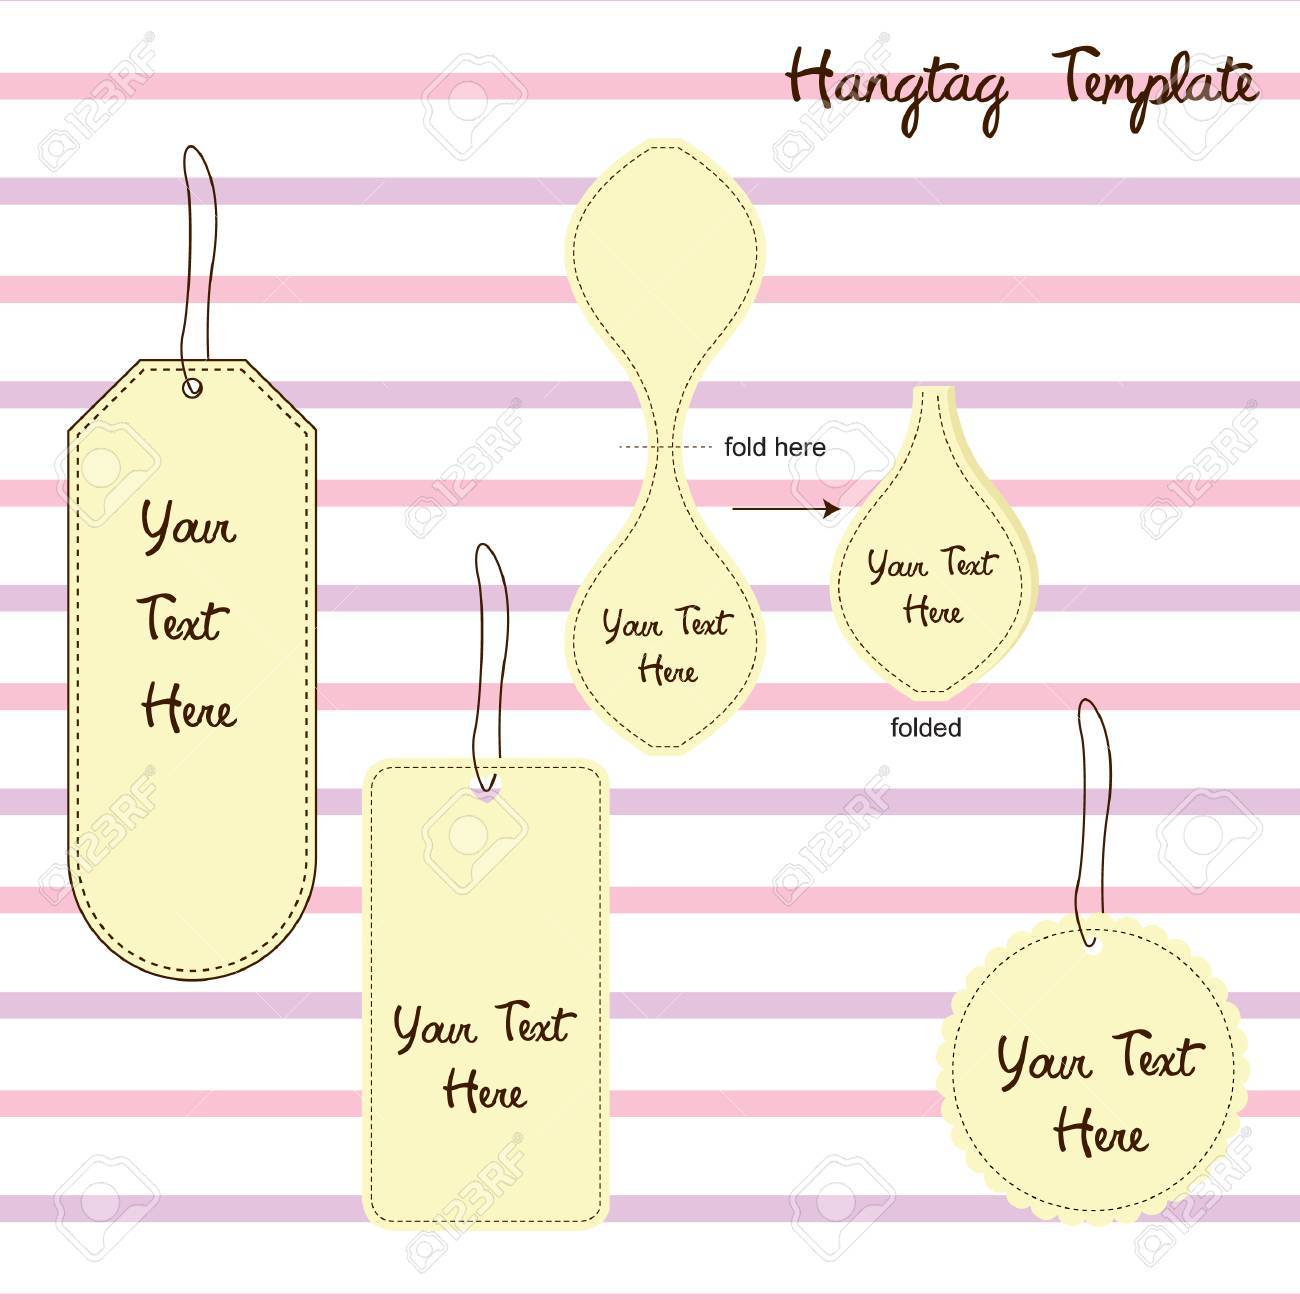 hang tag template - Selo.l-ink.co